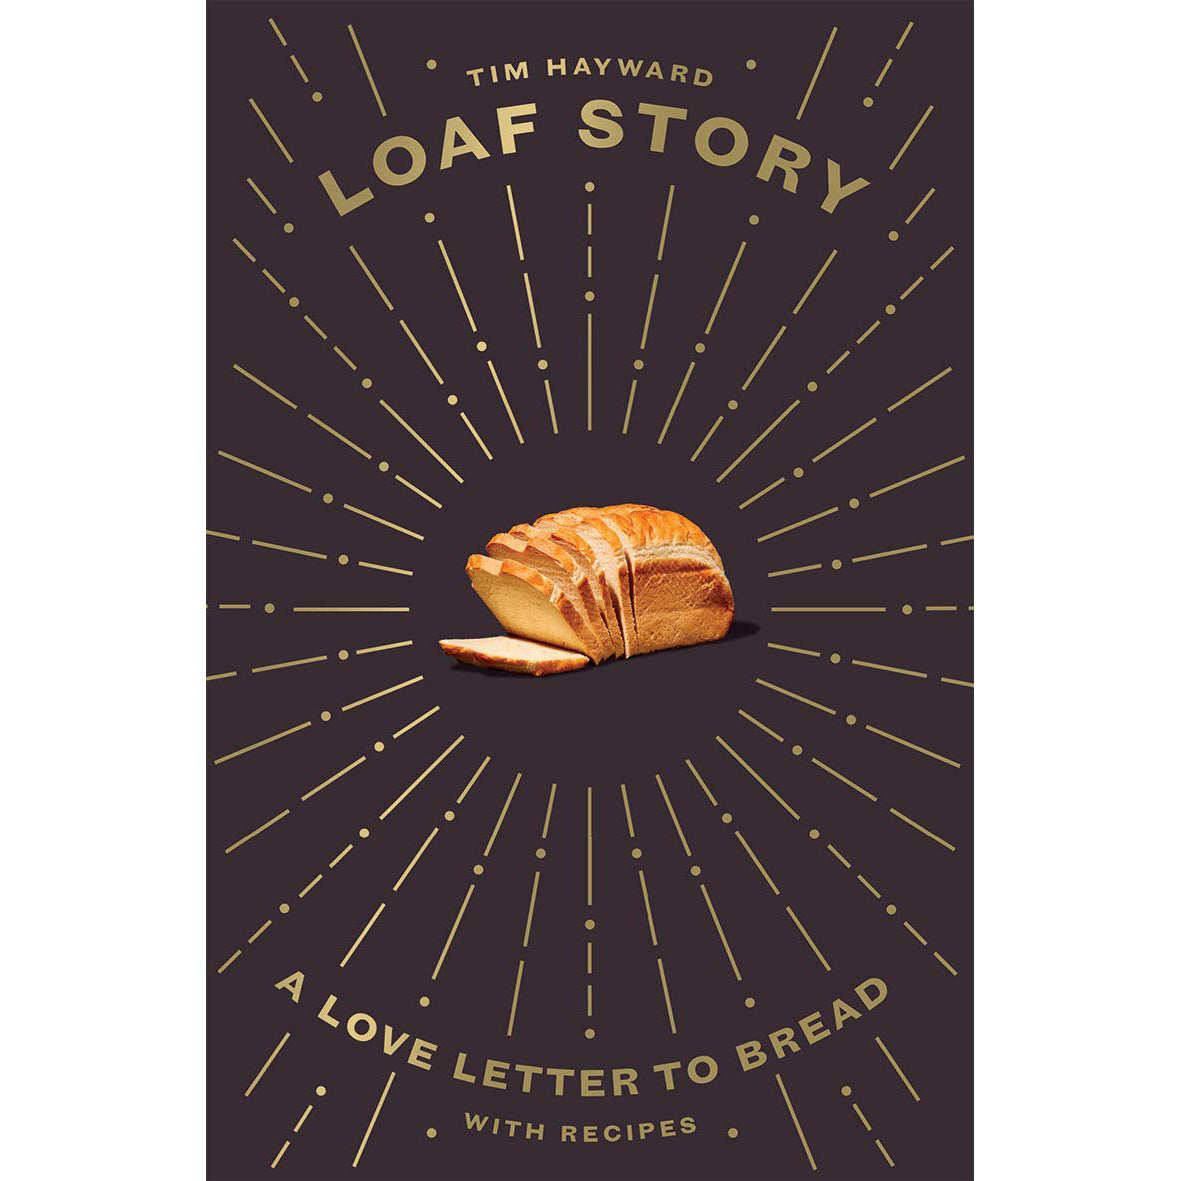 Cover of Loaf-Story